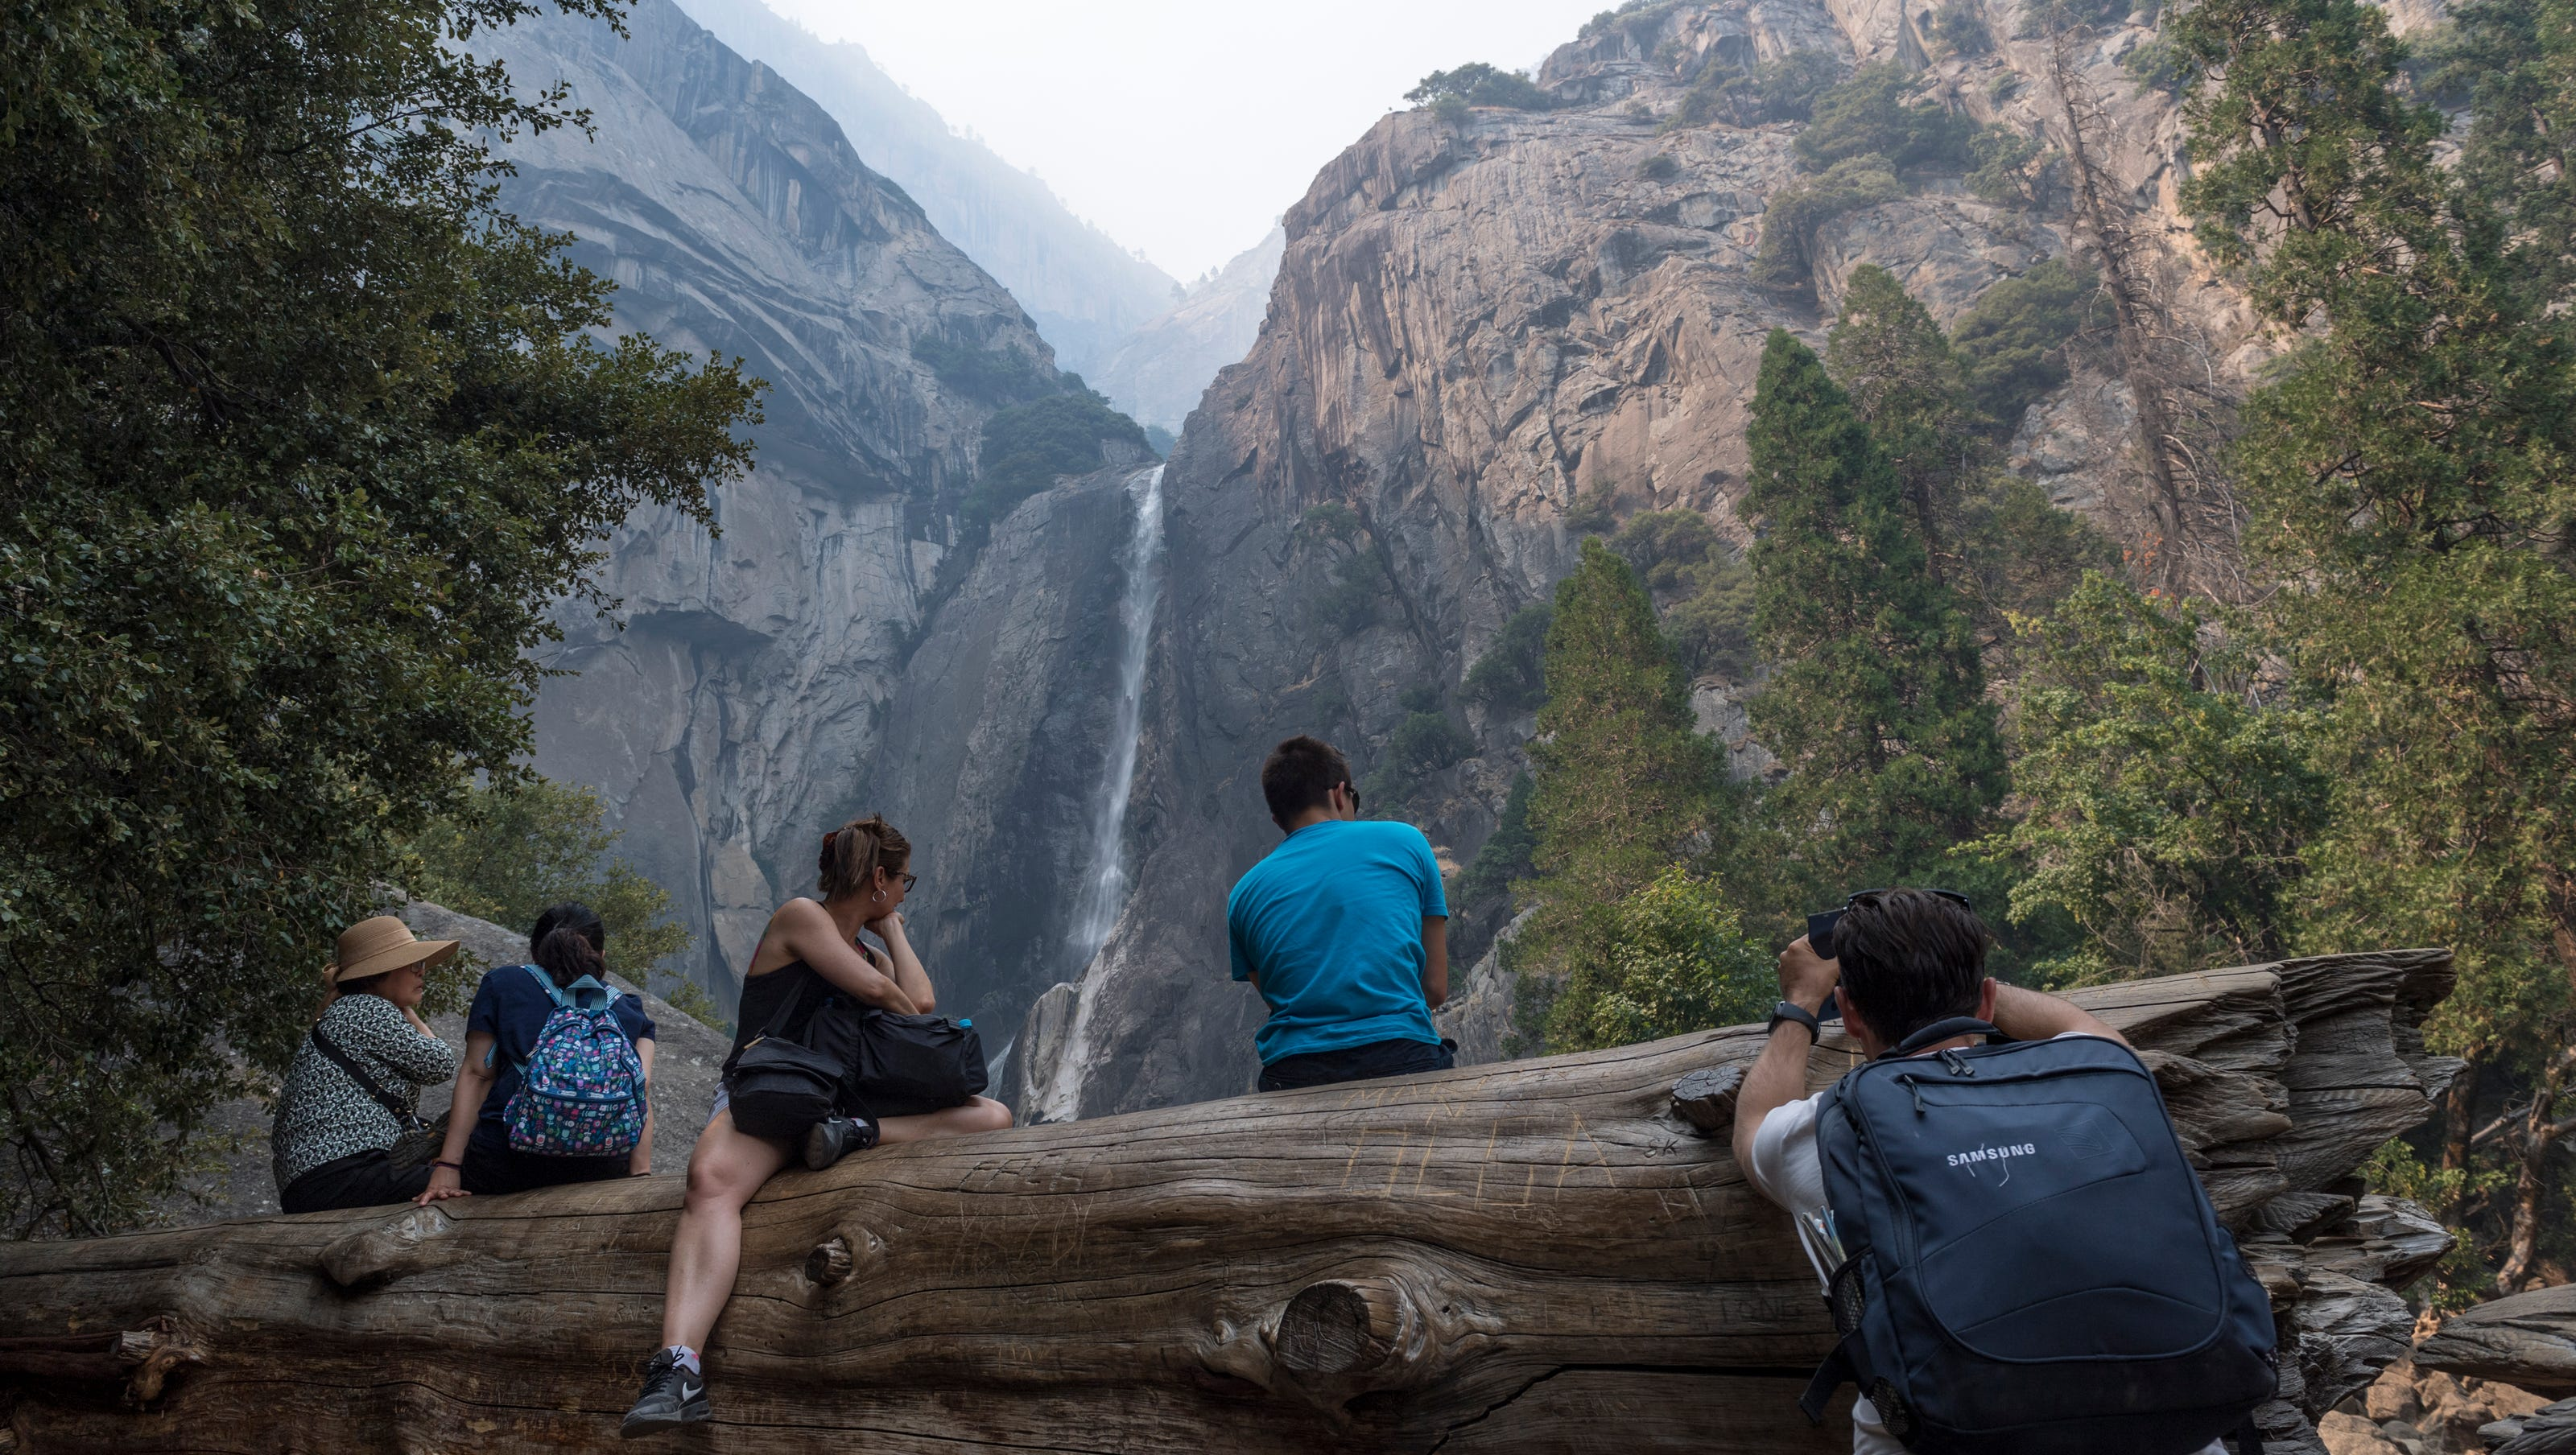 yosemite valley to reopen tuesday